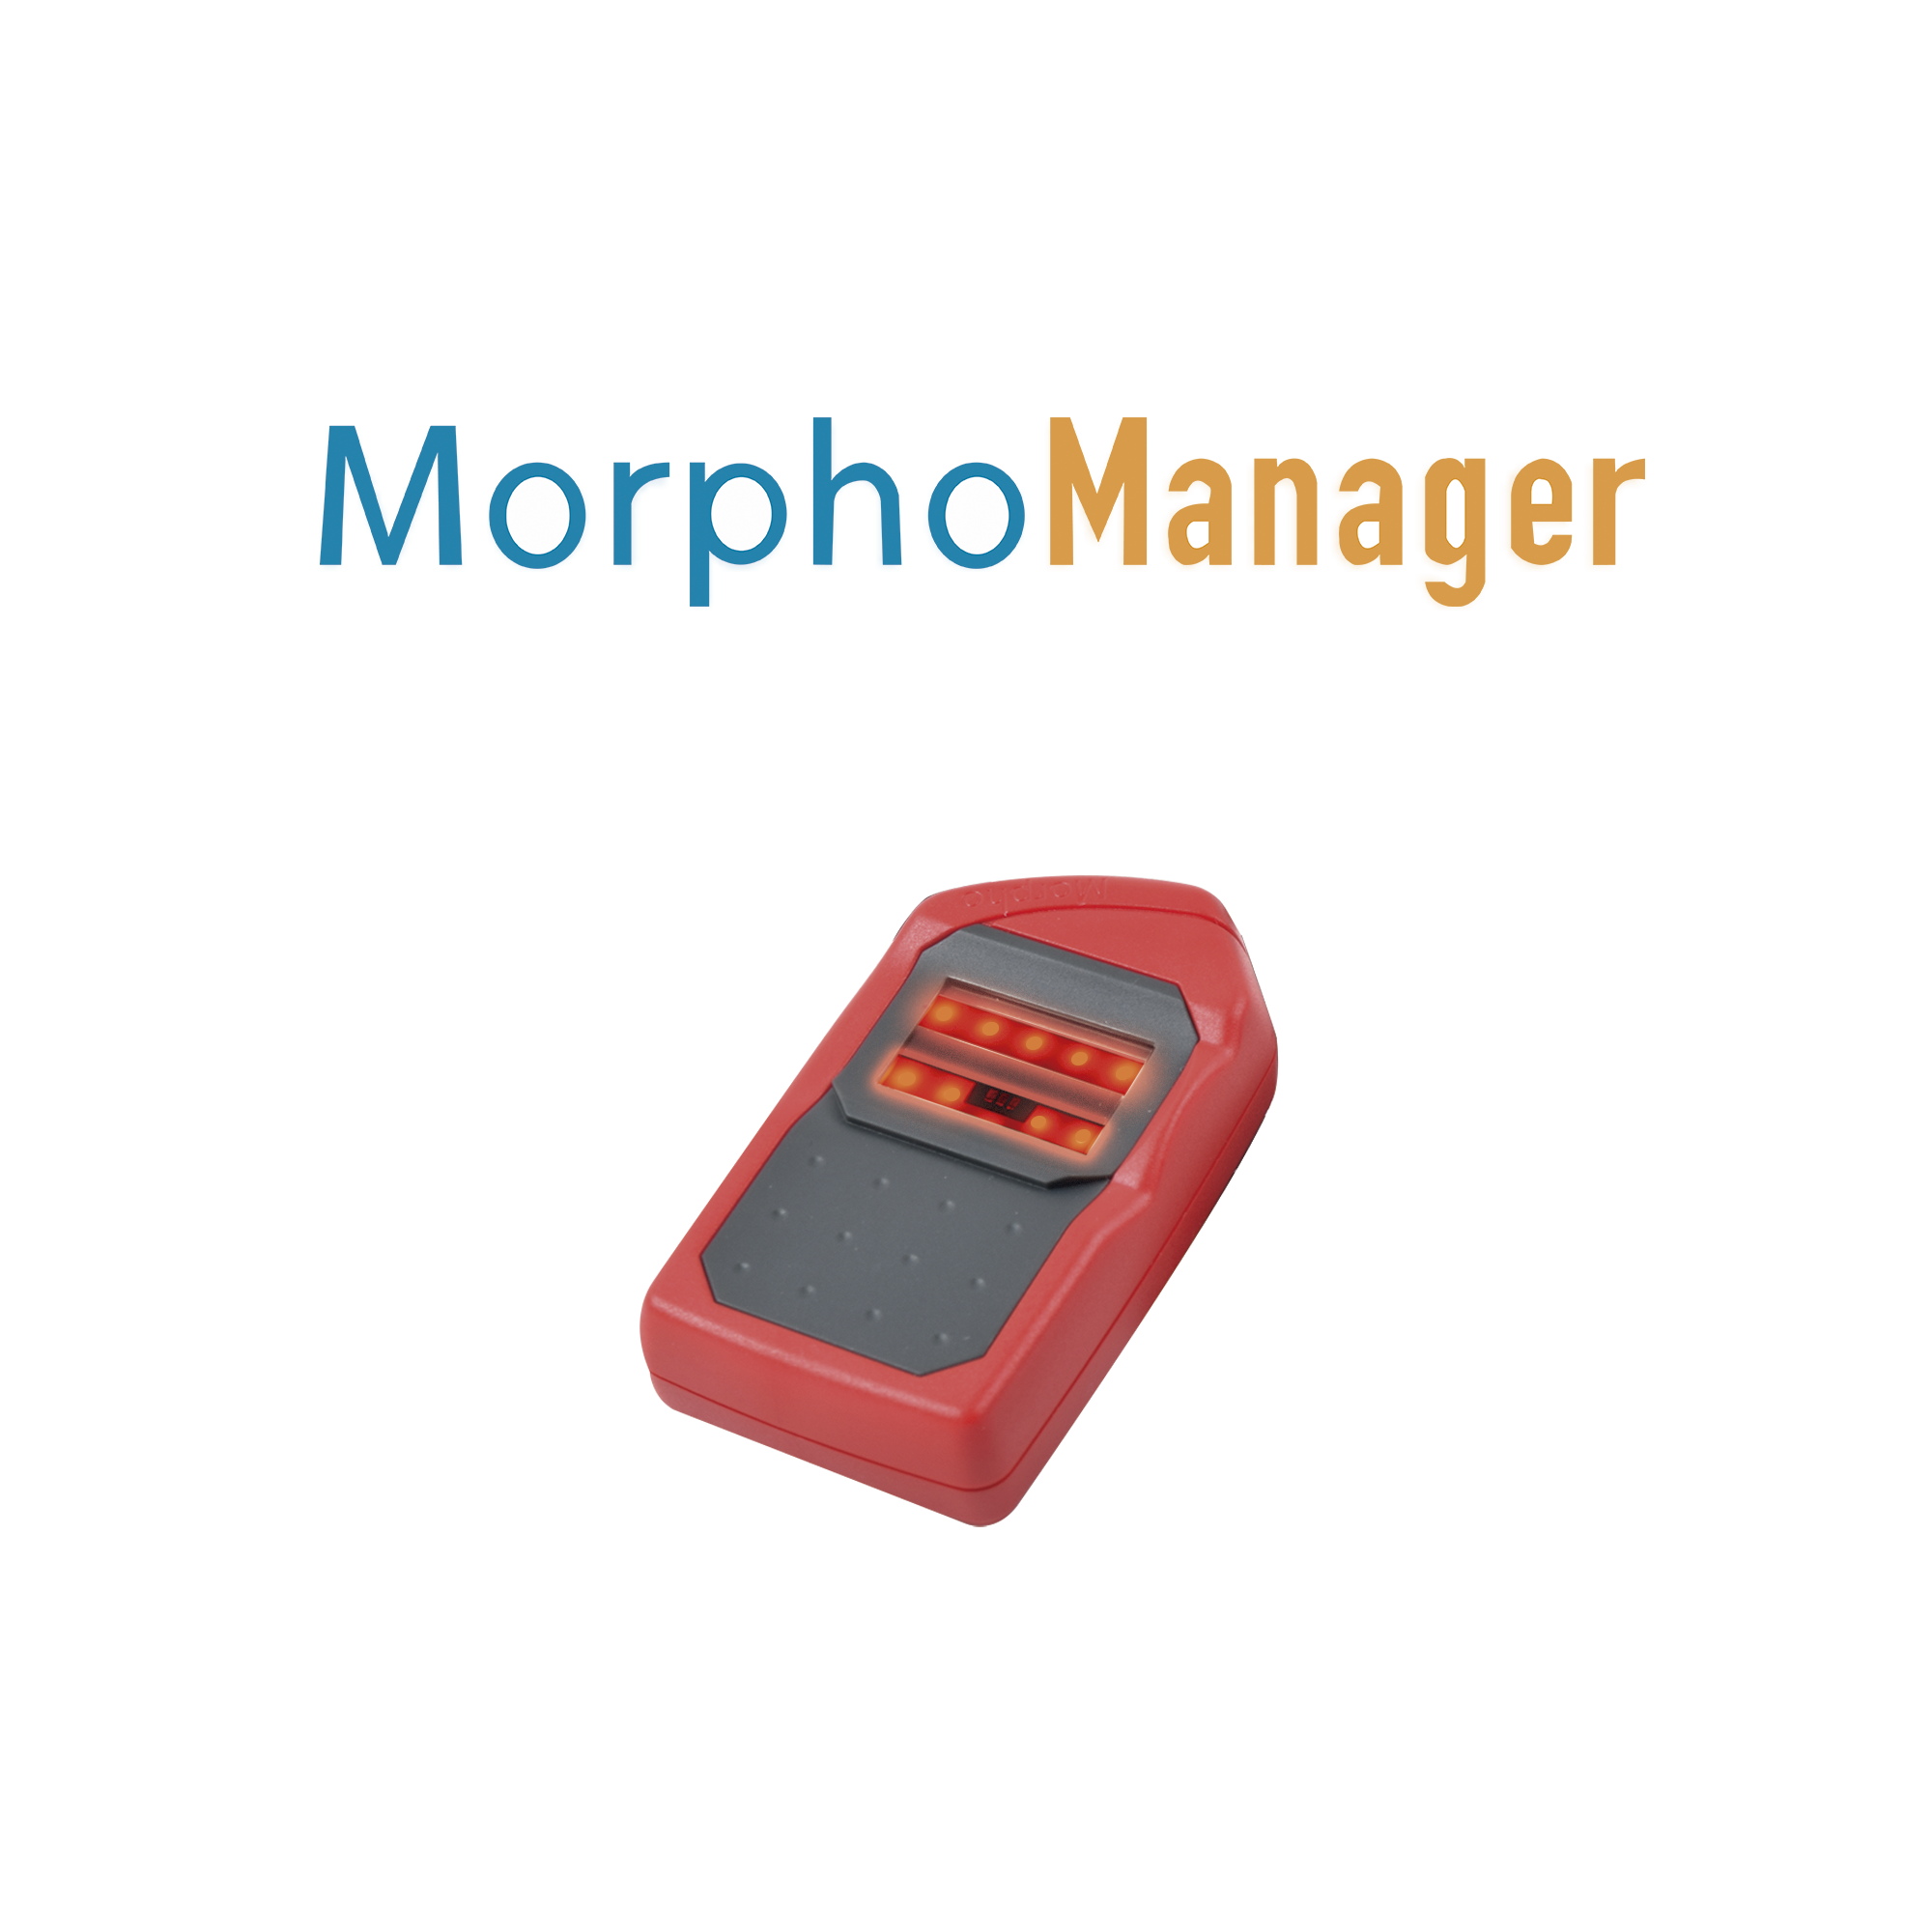 MORPHOMANAGER PRO PACK LIGHT INC. Eestacion de Enrolamiento MSO1300